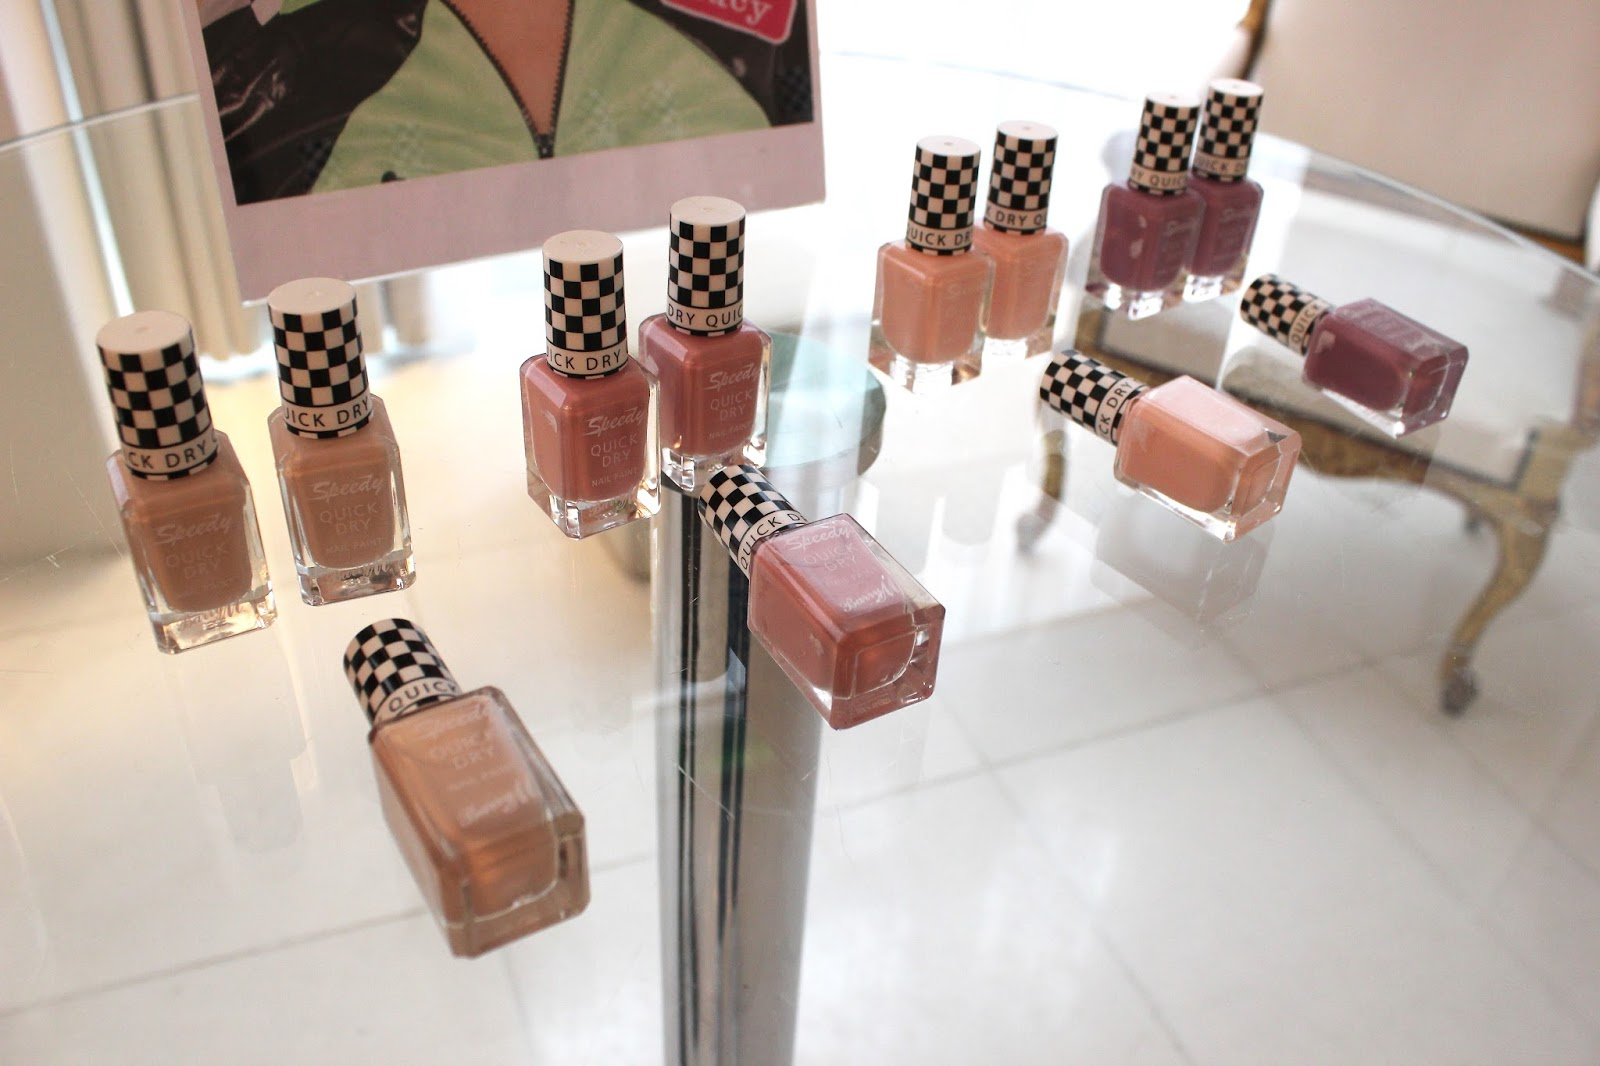 Barry M's Spring 2016 Launches